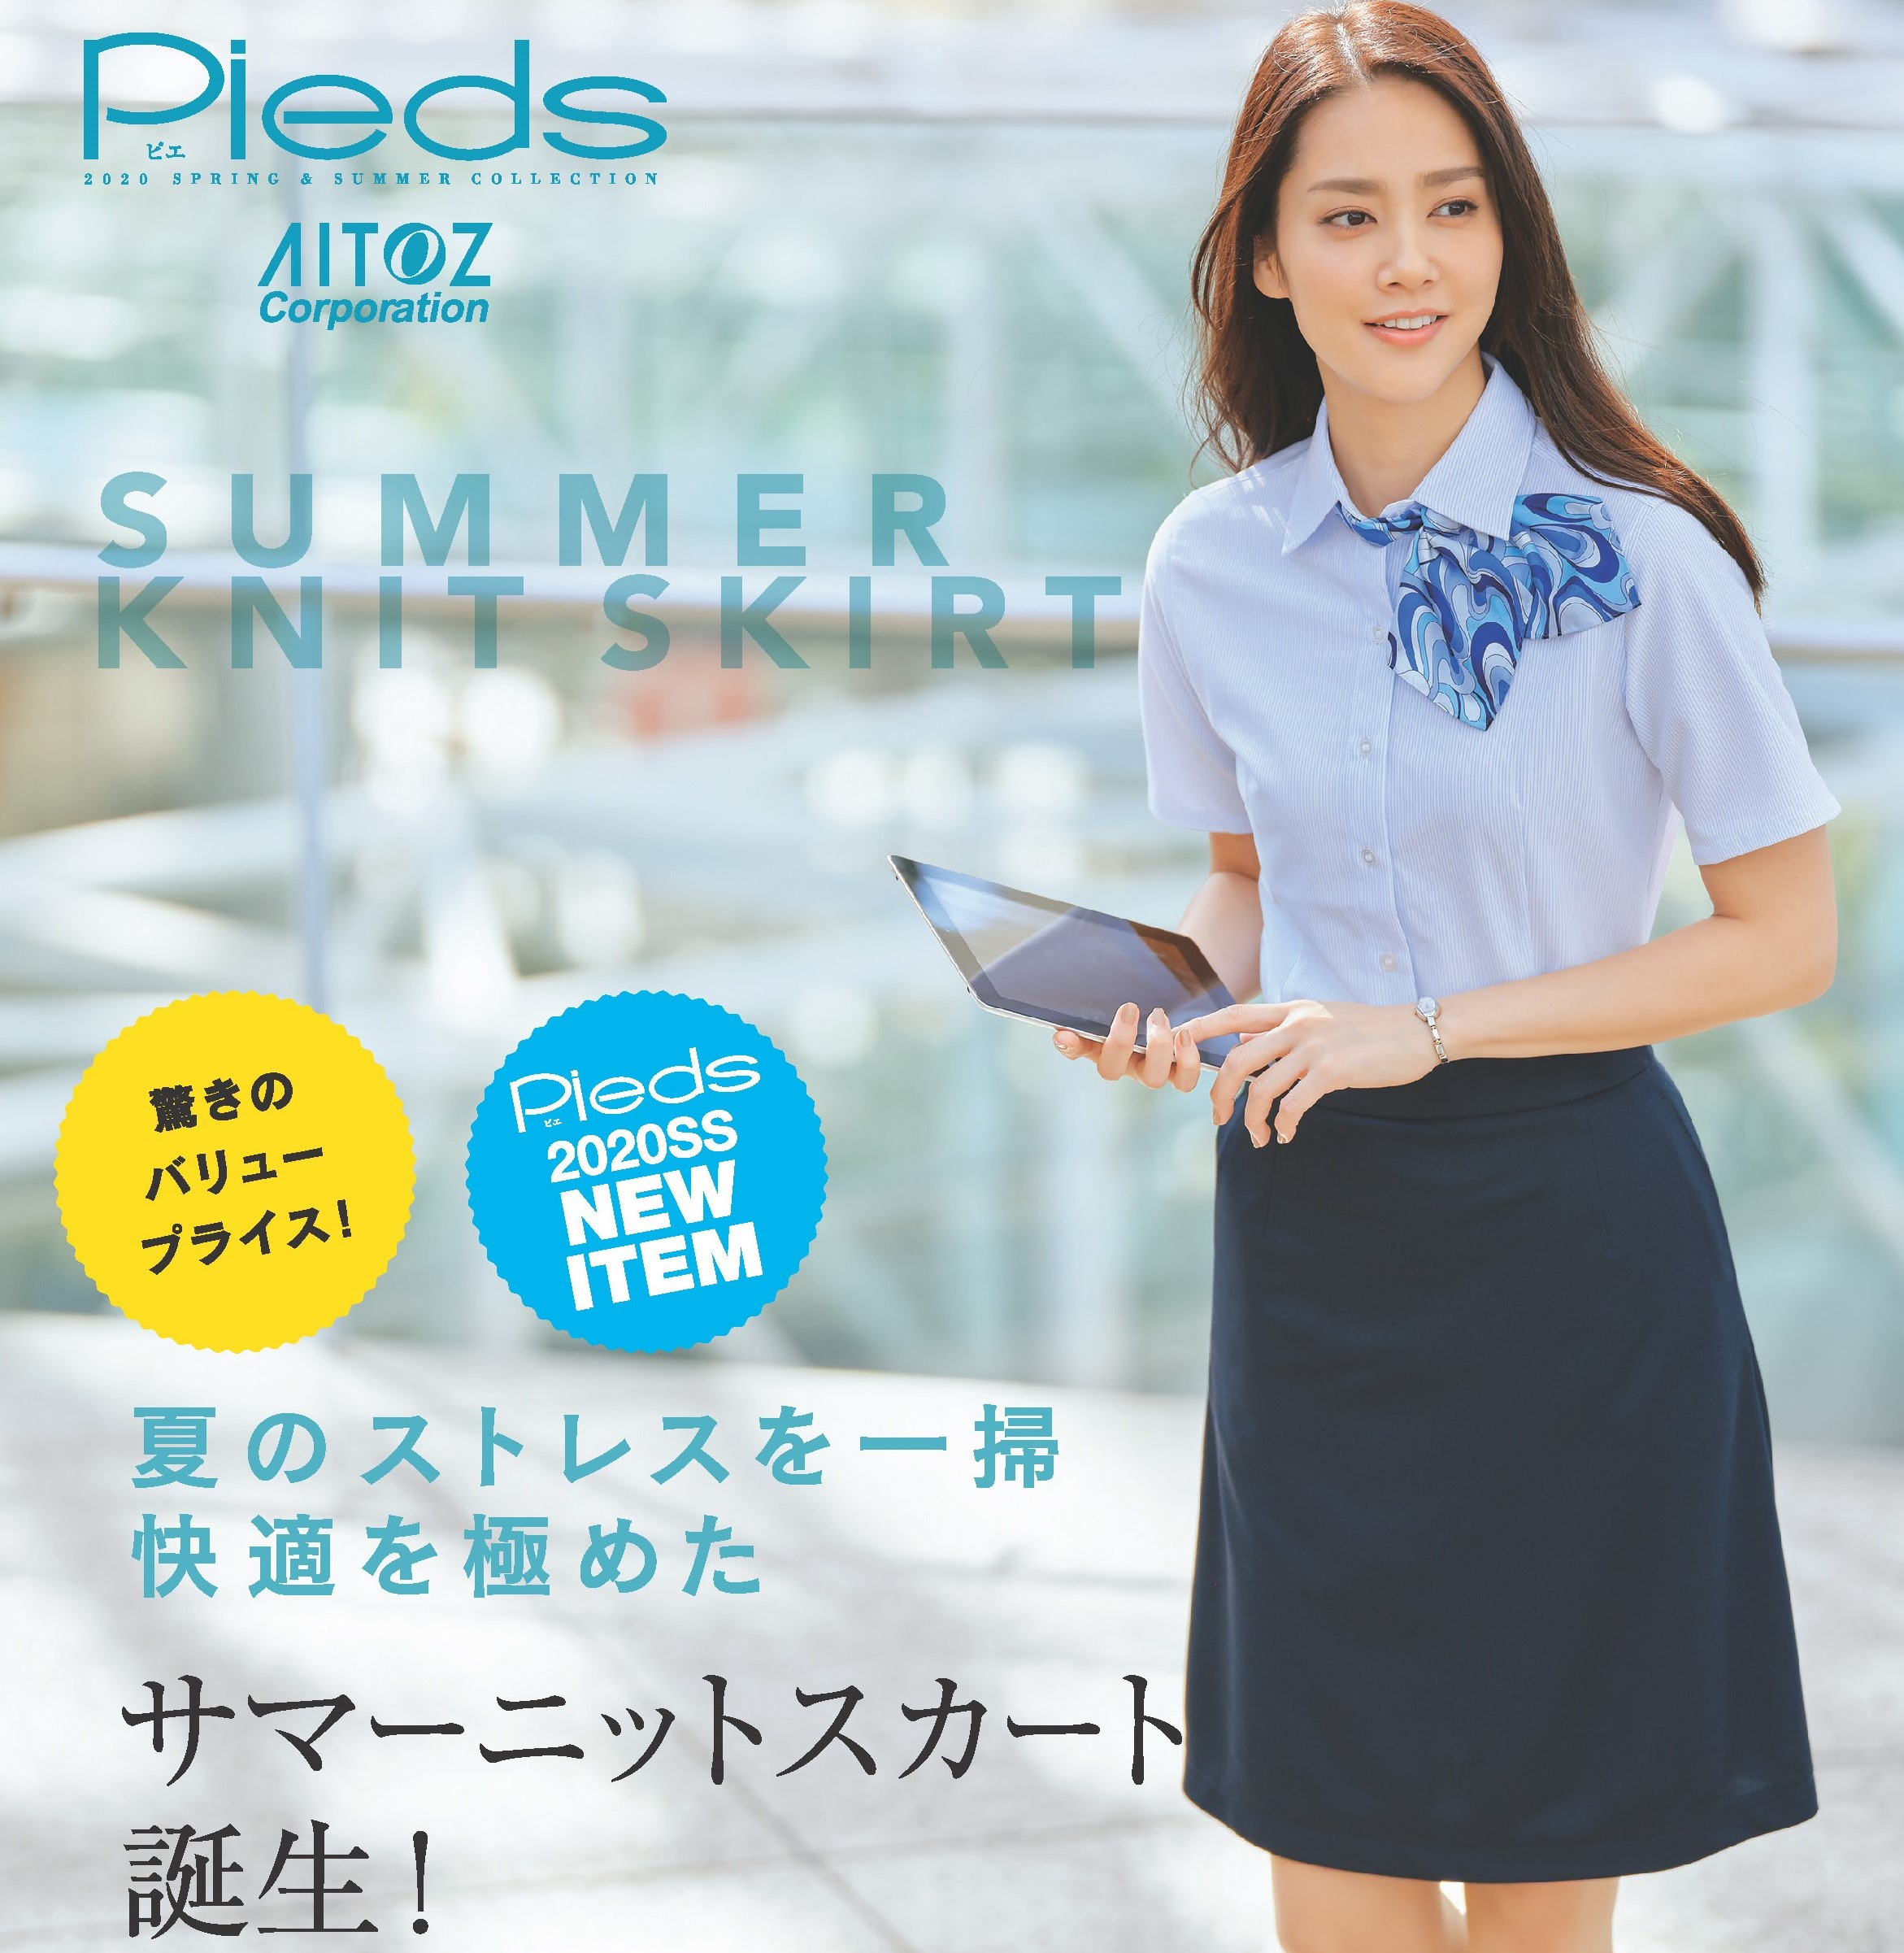 2020SS_Pieds新商品スカート_トップ2